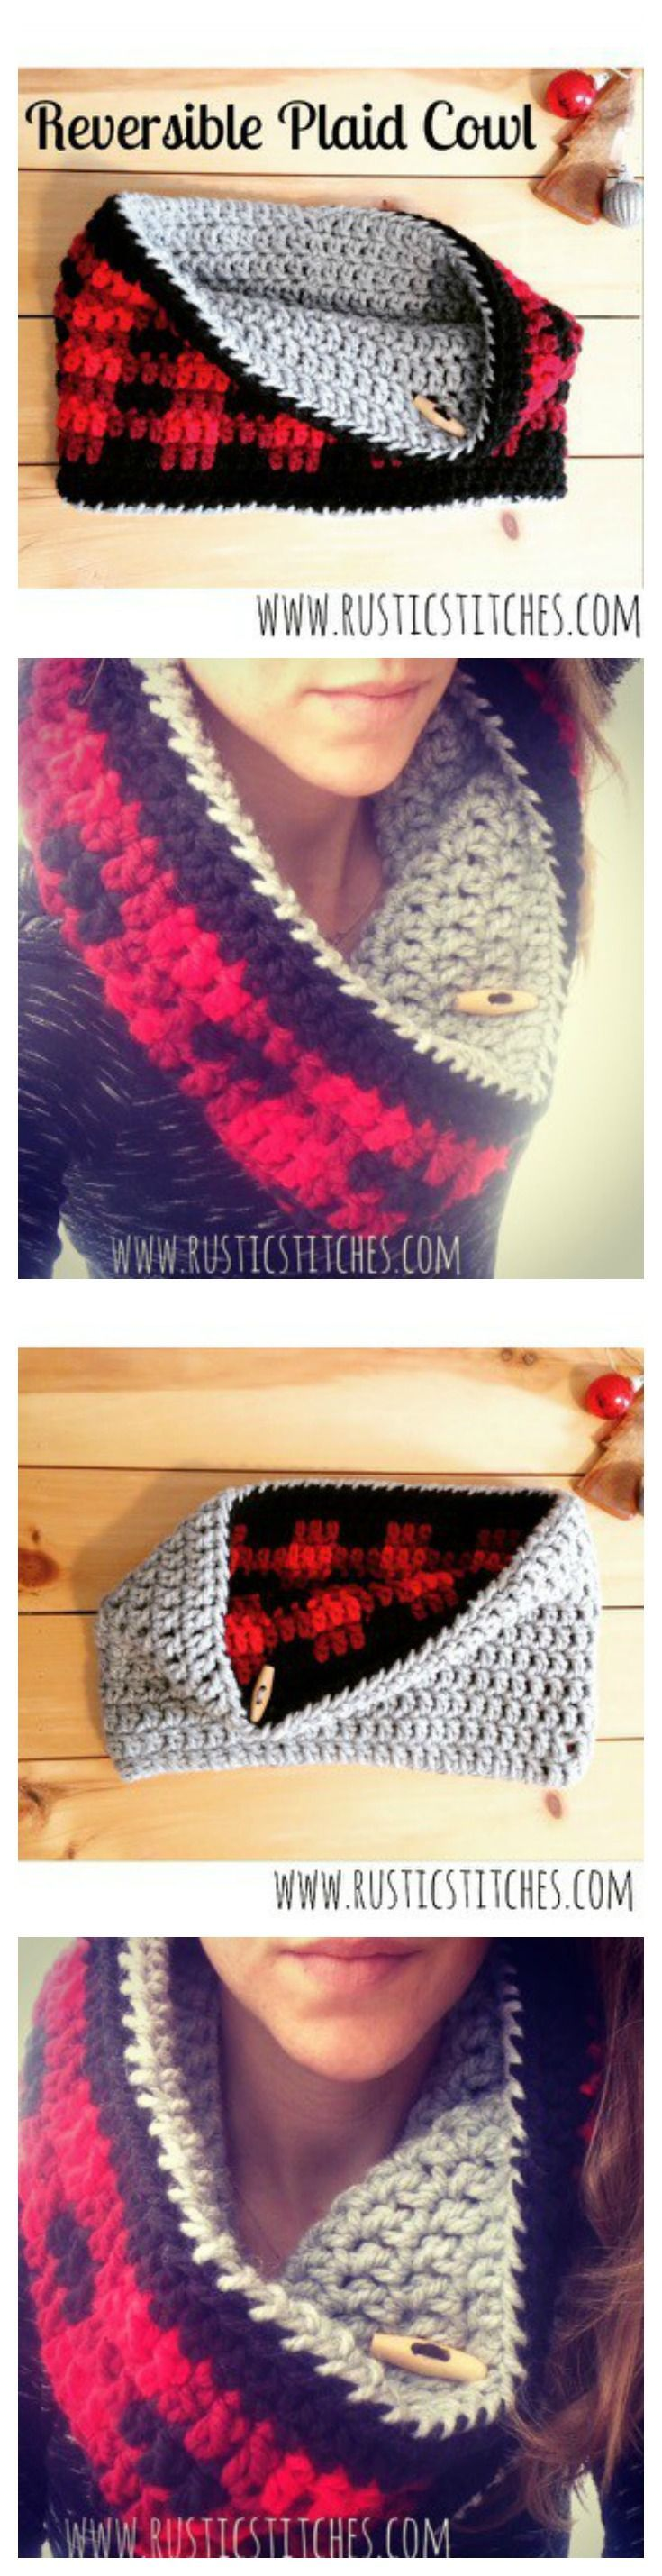 Reversible Plaid Cowl - FREE PATTERN from http://www.rusticstitches ...